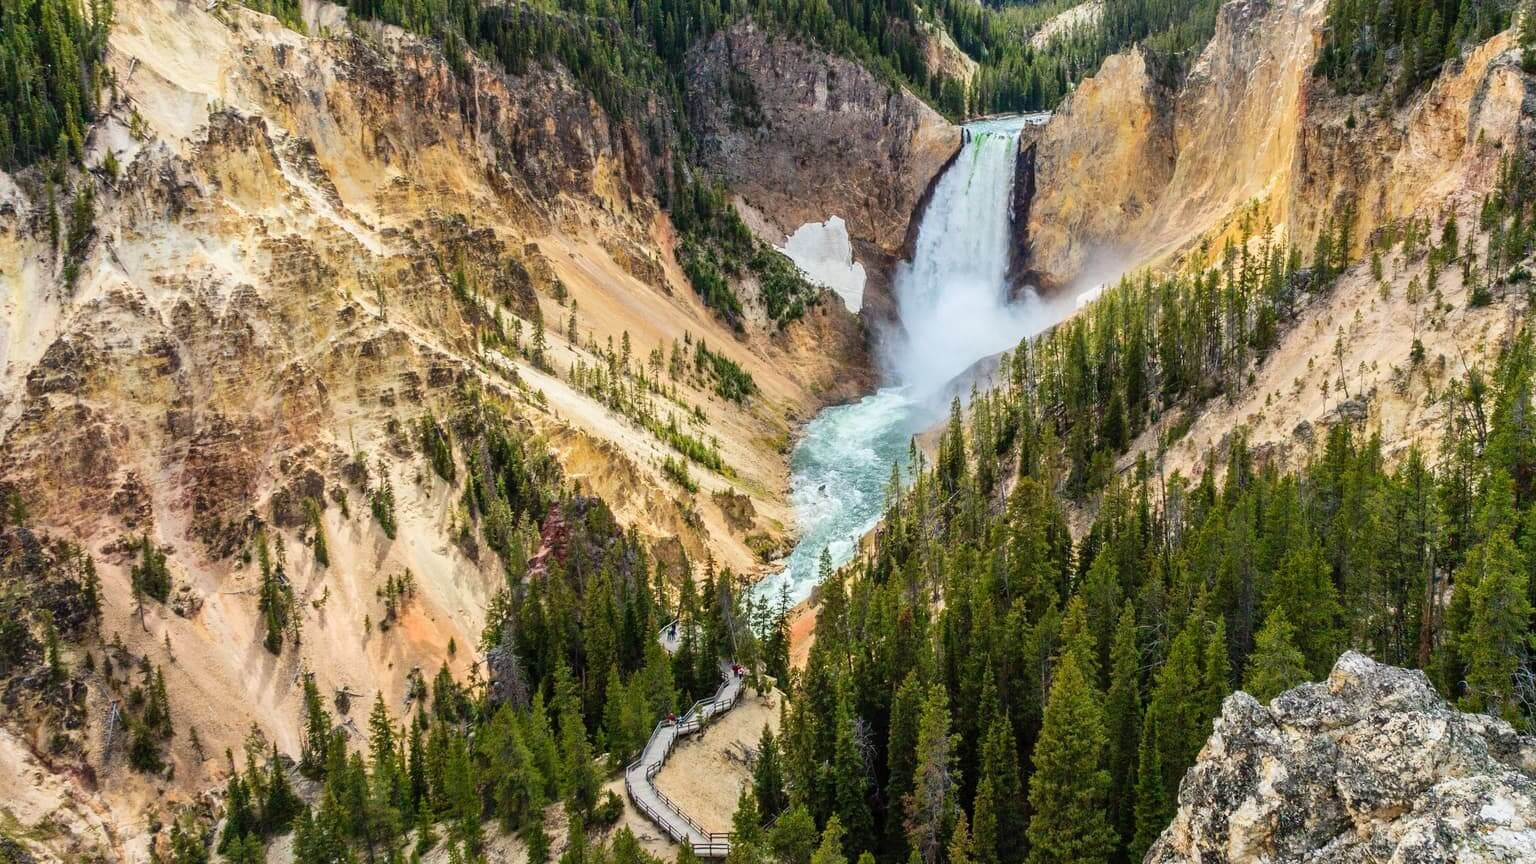 YellowStone Grand Canyon bird's eye view